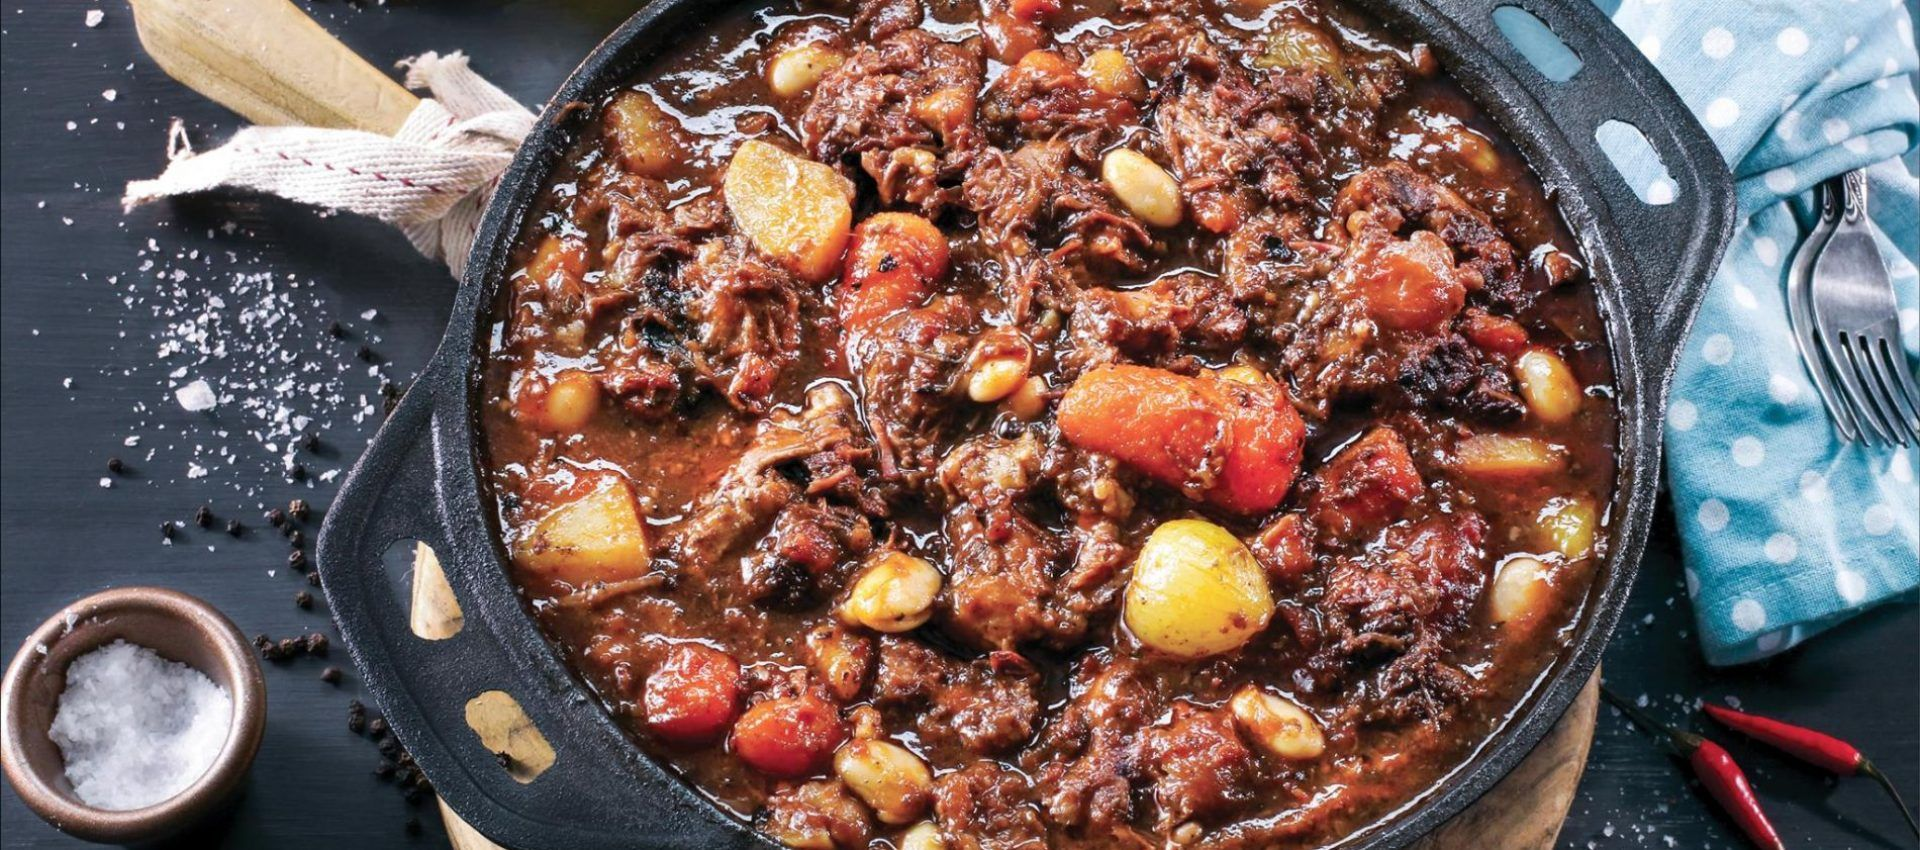 Oxtail potjie food food lover yummy food